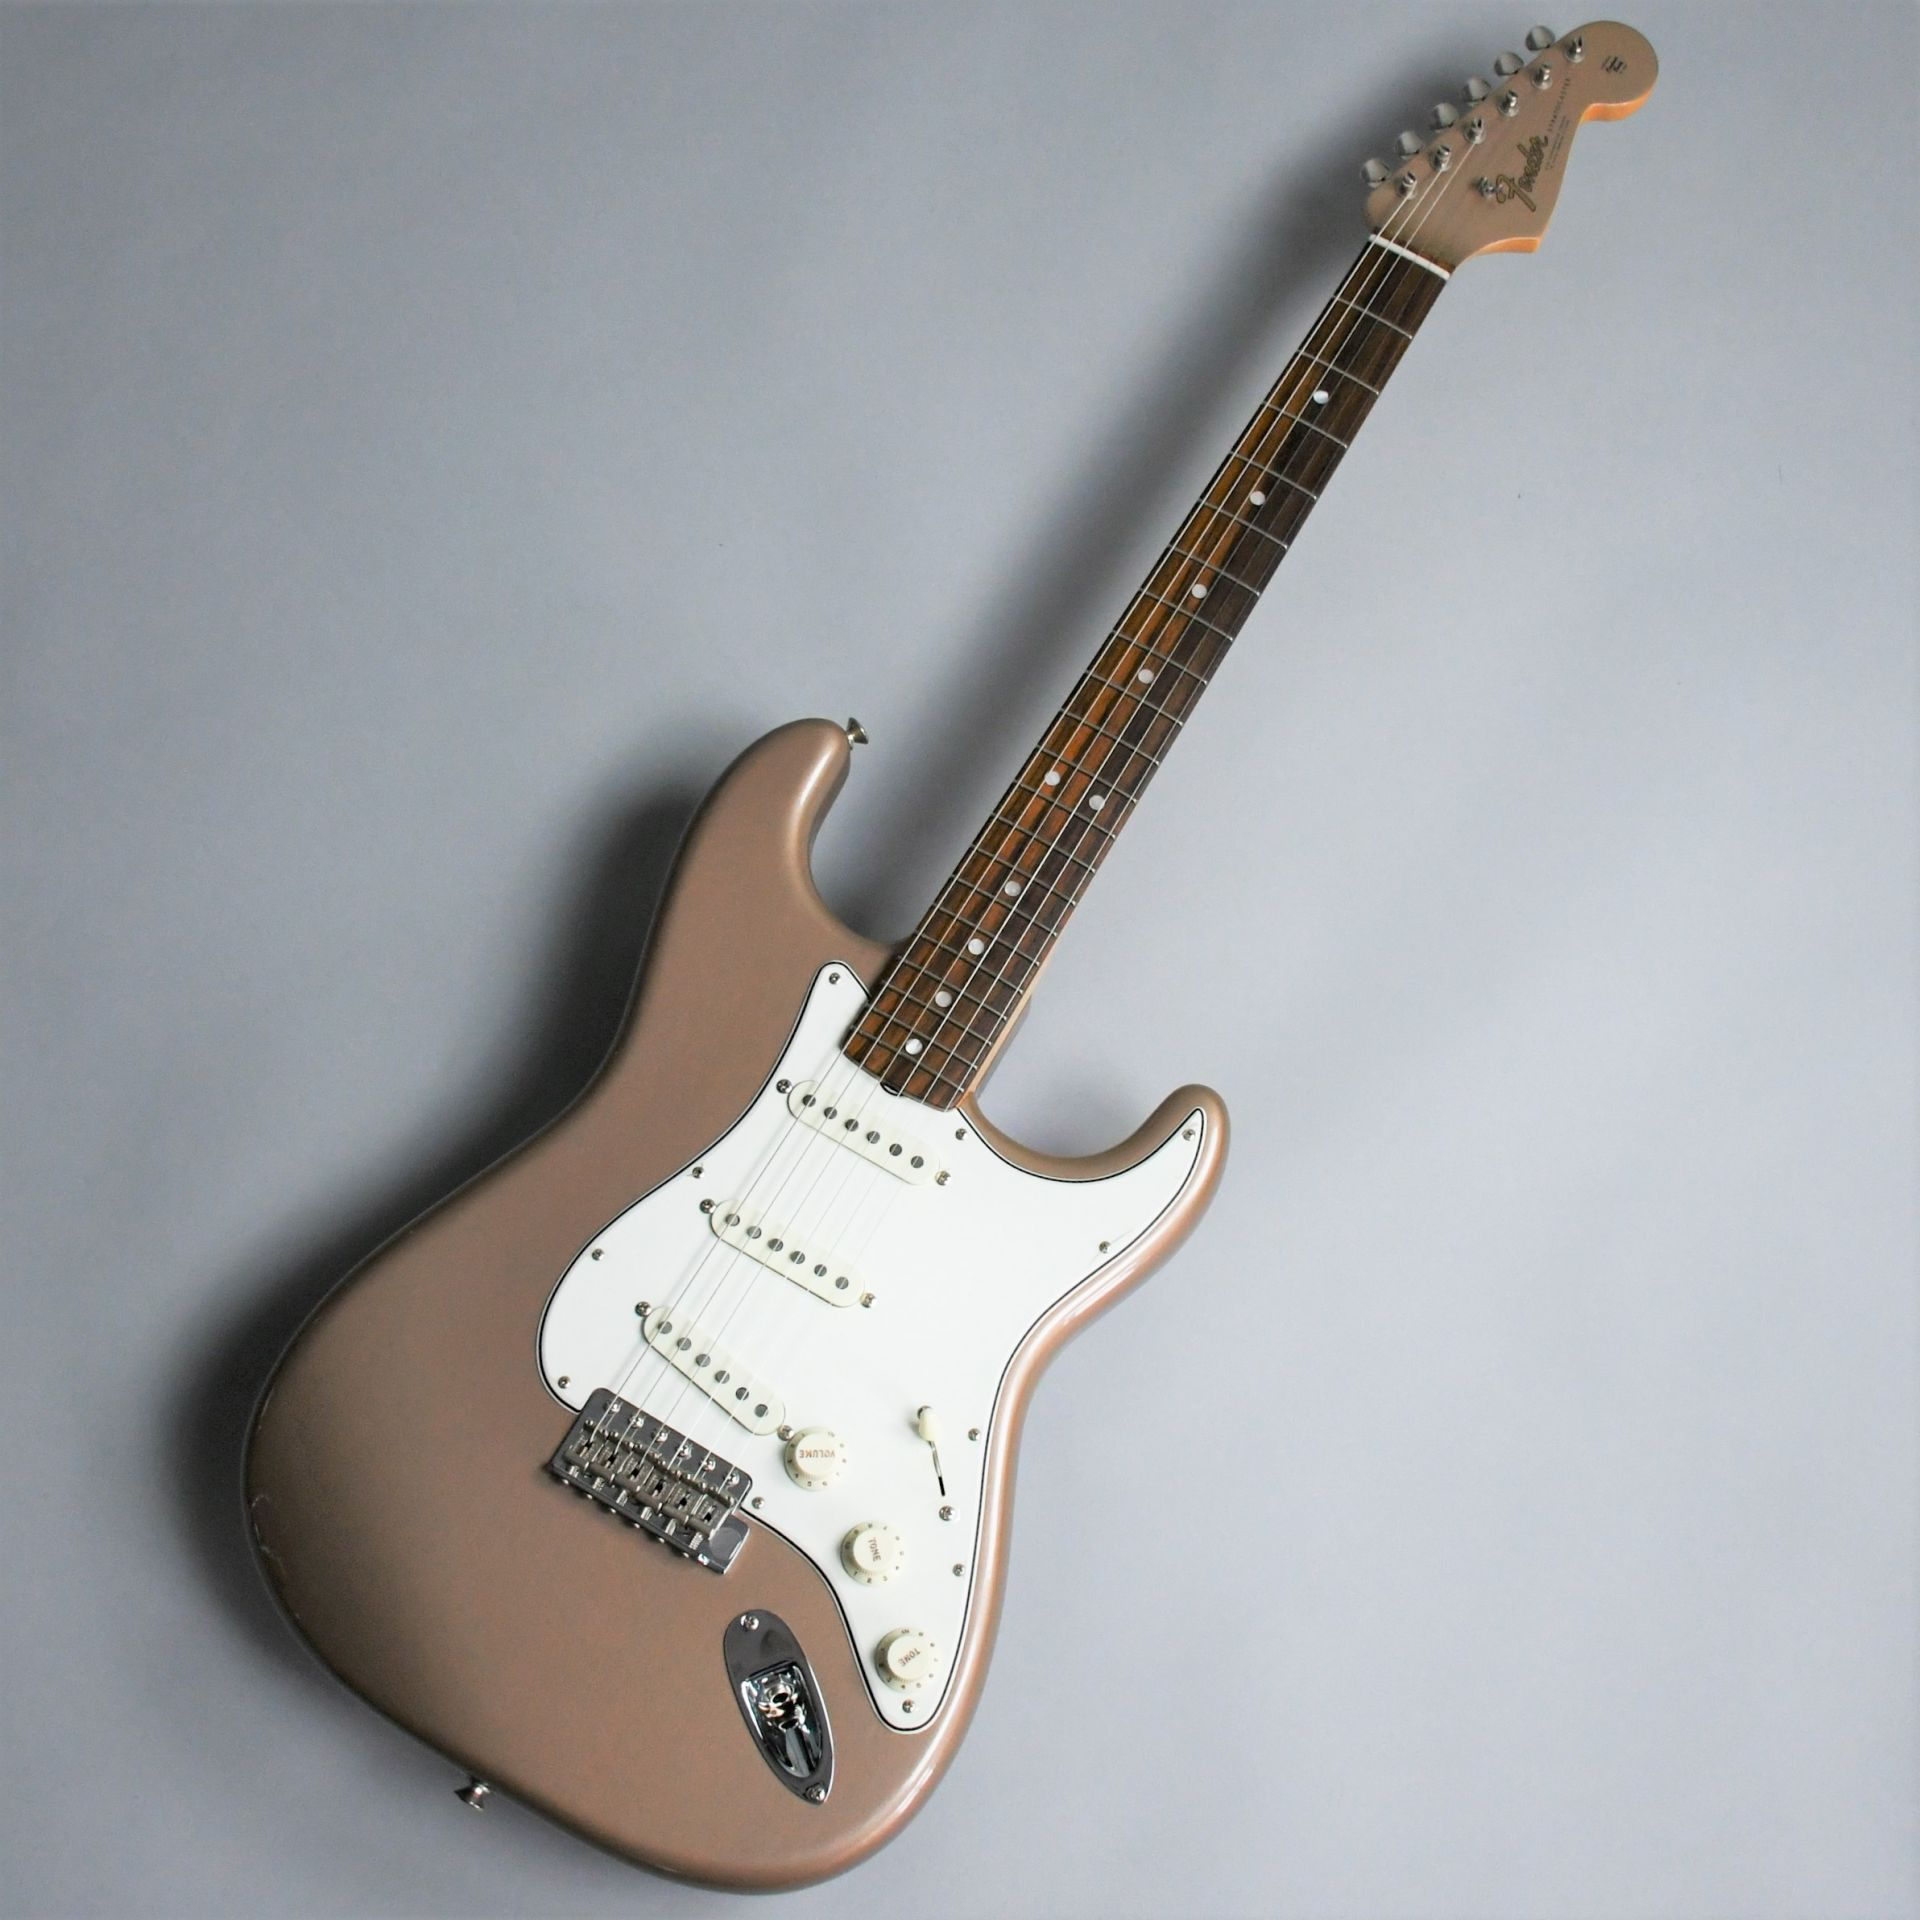 American Vintage 65 Stratocaster Round-Lam Rosewood Fingerboardのボディトップ-アップ画像